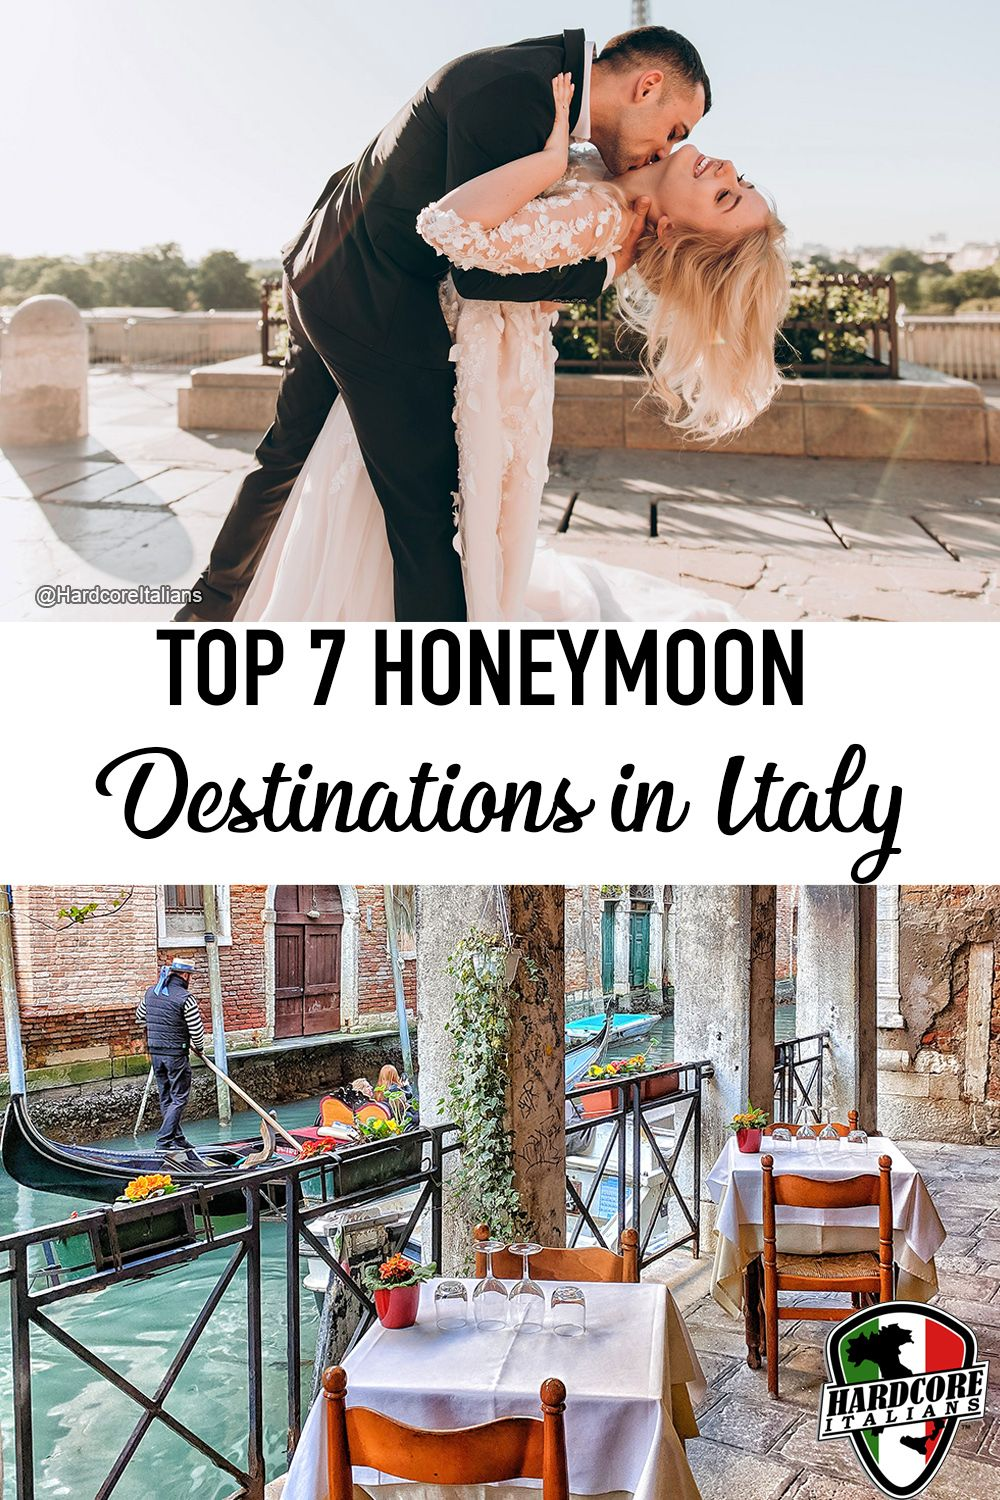 Italy Is Often Considered One Of The Most Romantic Cities